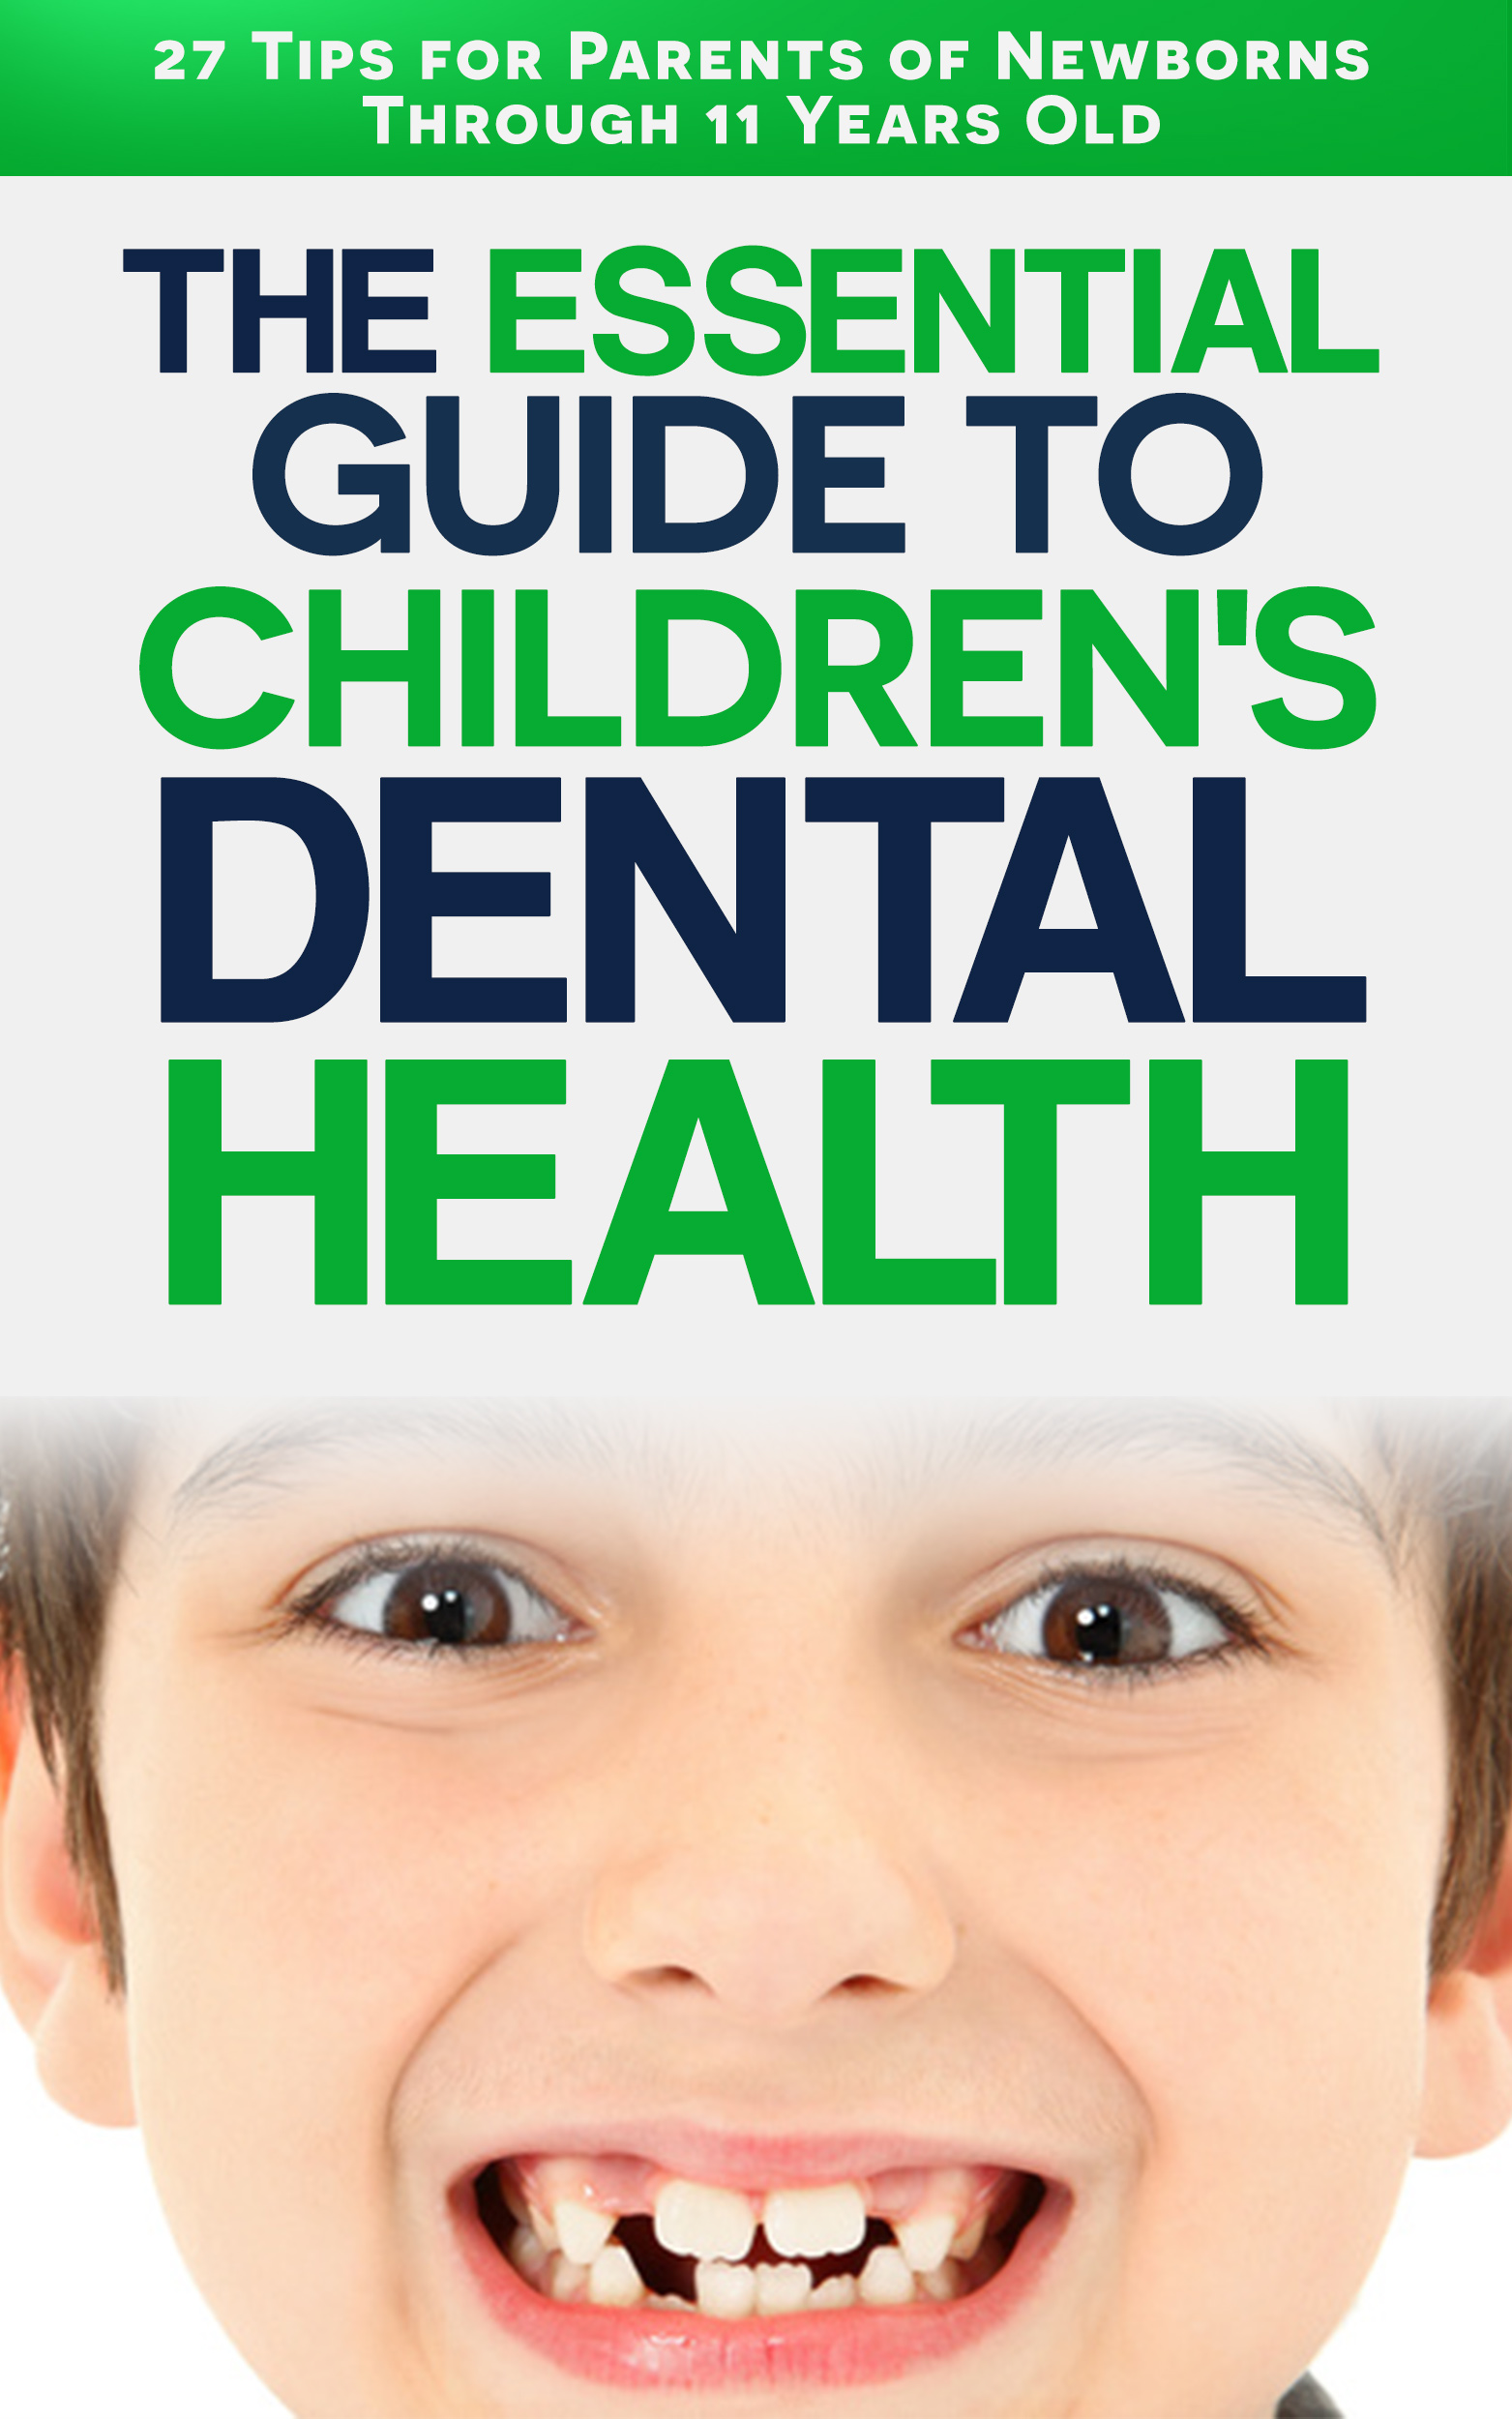 Children's dental health guide